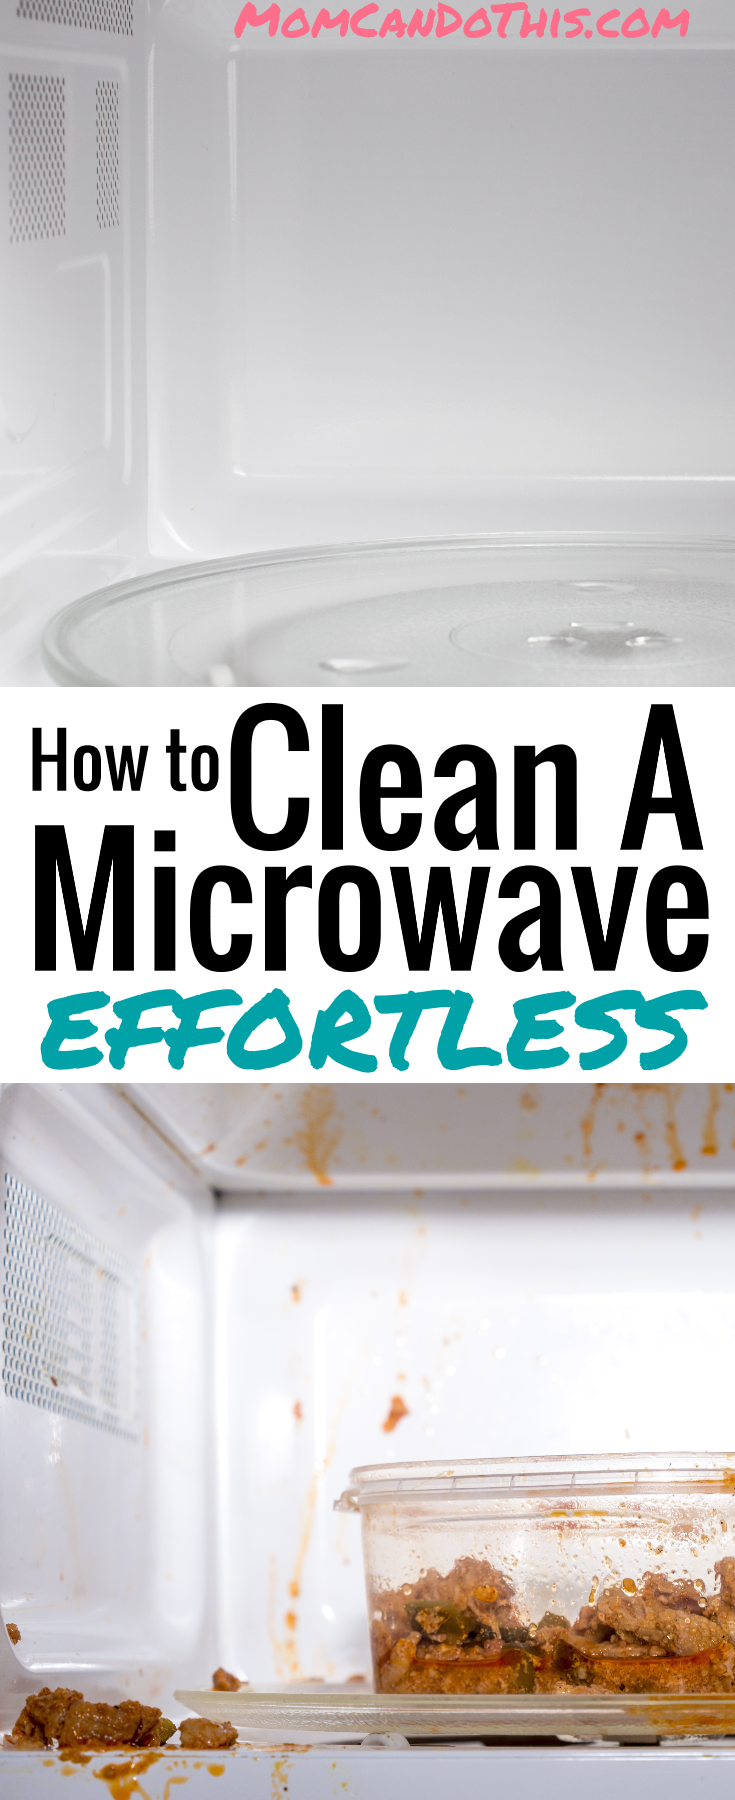 Awesome Cleaning Hack to Clean A Microwave! Let your filthy microwave clean itself with this super simple cleaning tip. Easy, frugal, all natural, time-saving. Click through to learn How!